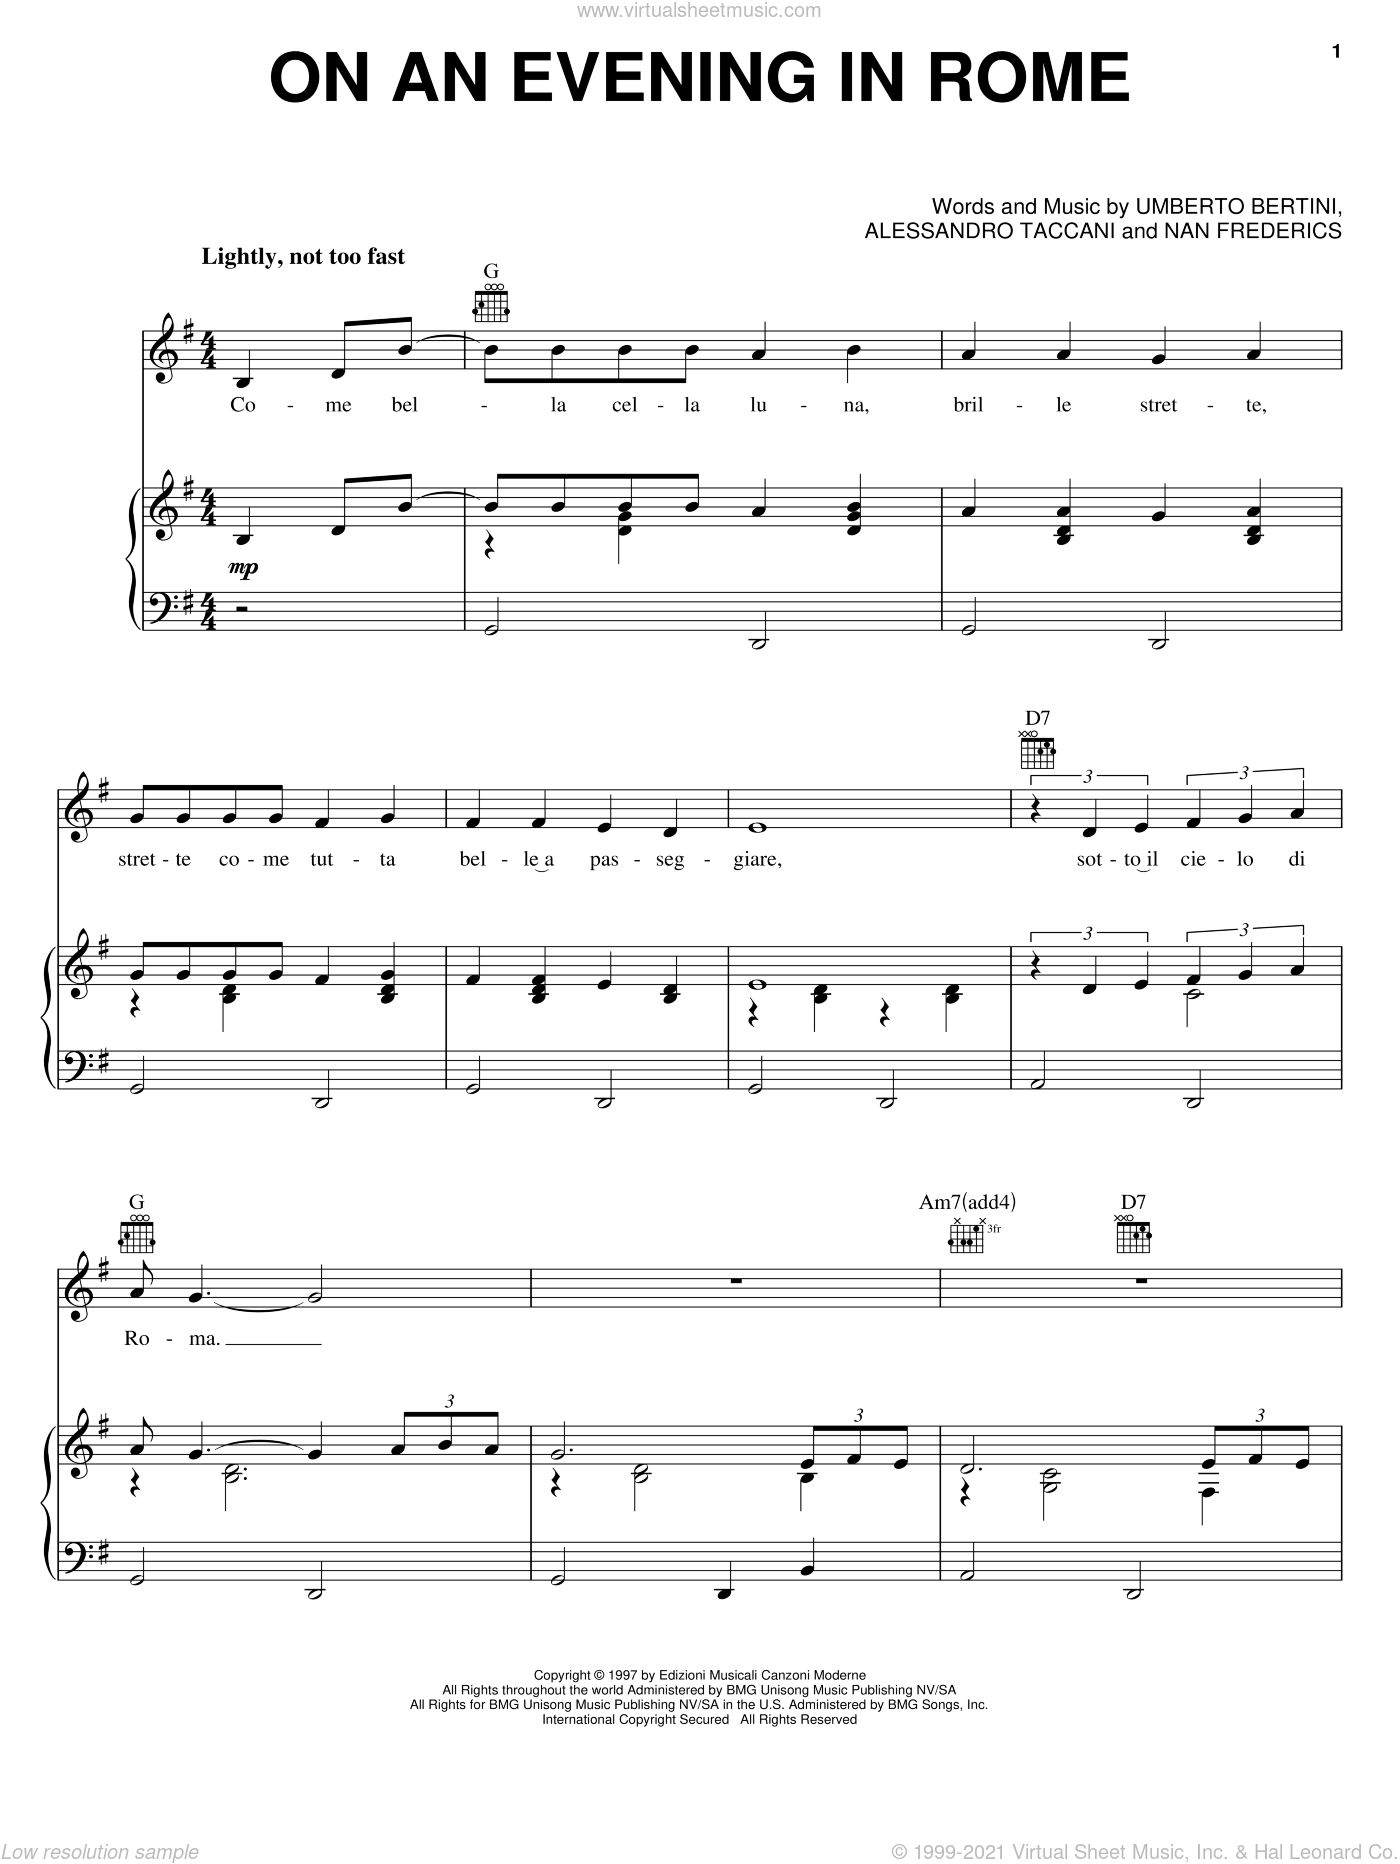 On An Evening In Rome sheet music for voice, piano or guitar by Umberto Bertini